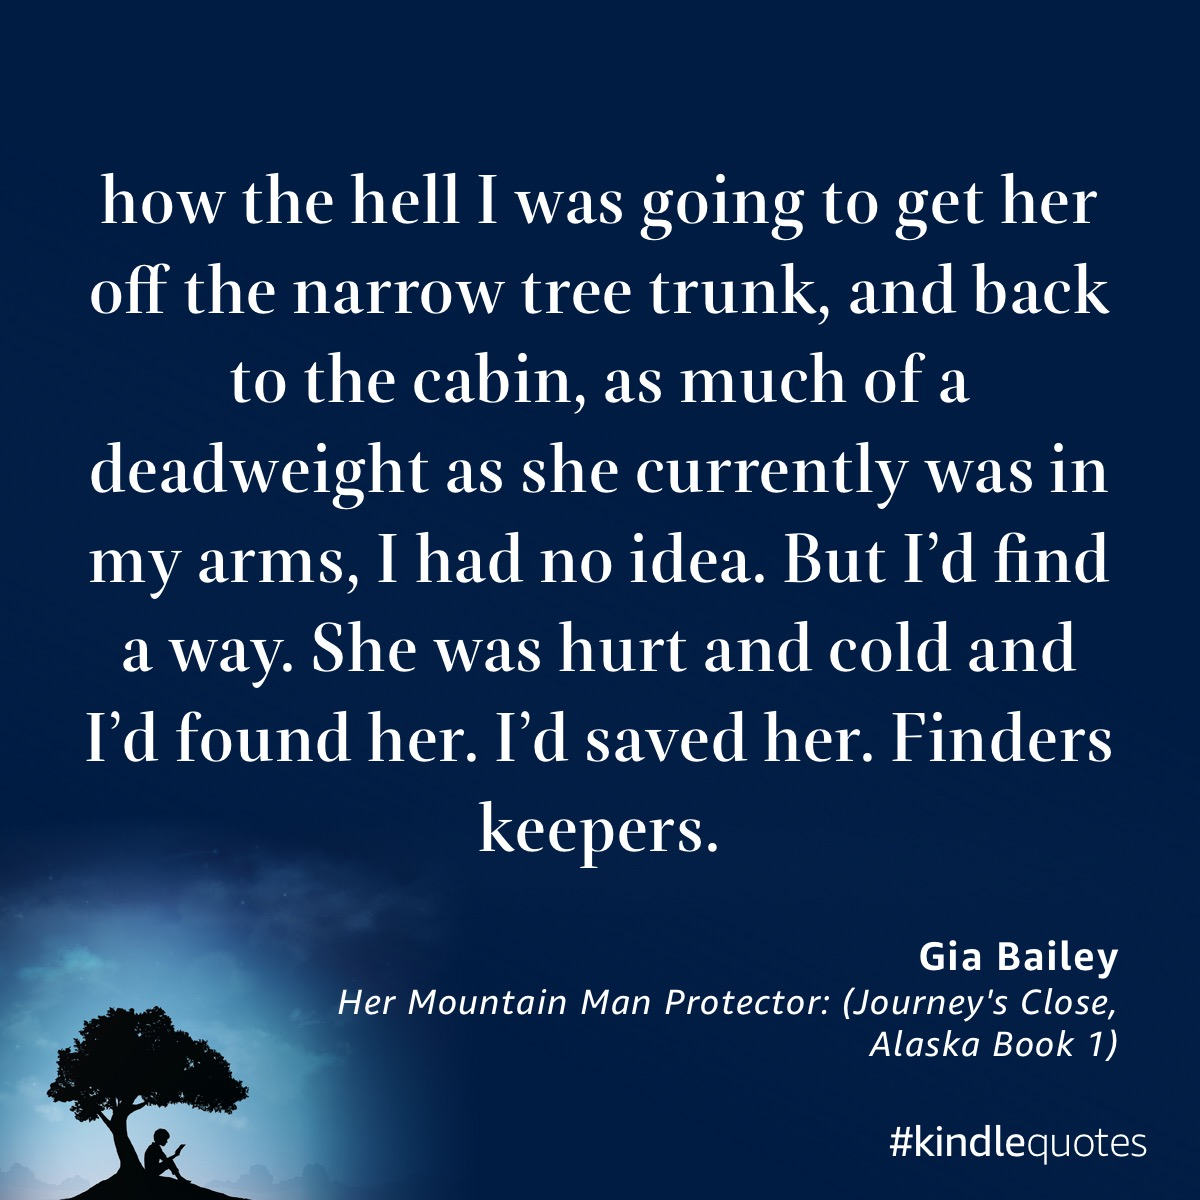 Book quote Gia Bailey